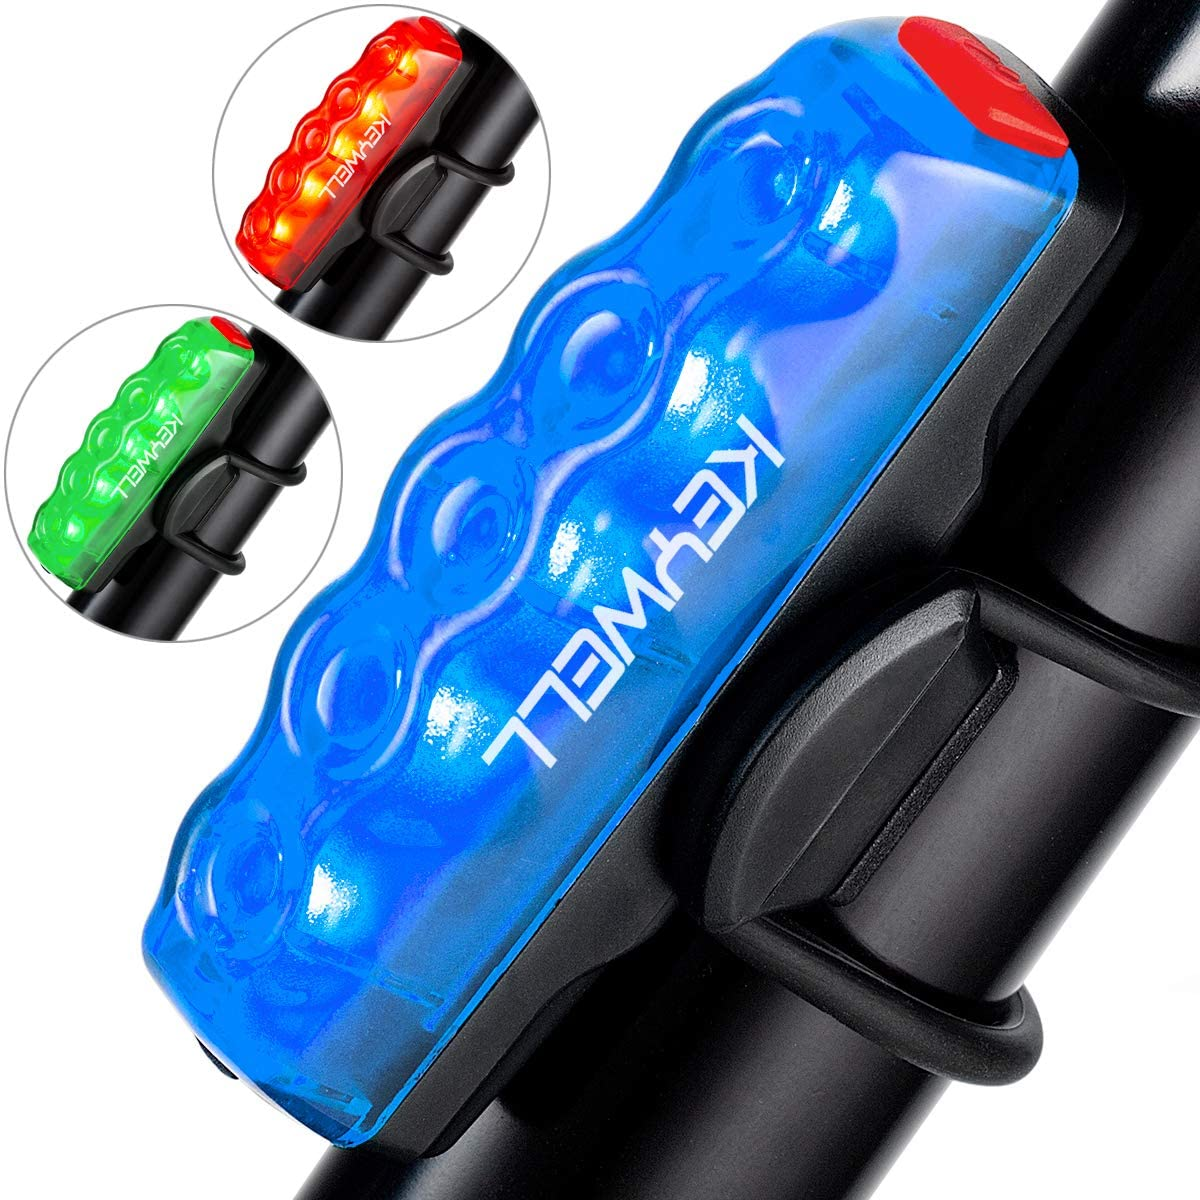 KEYWELL Bike Tail Light USB Rechargeable-Super Bright LED Bicycle Rear Light with Red/Blue/Green Color Waterproof Taillight for Cycling Safety